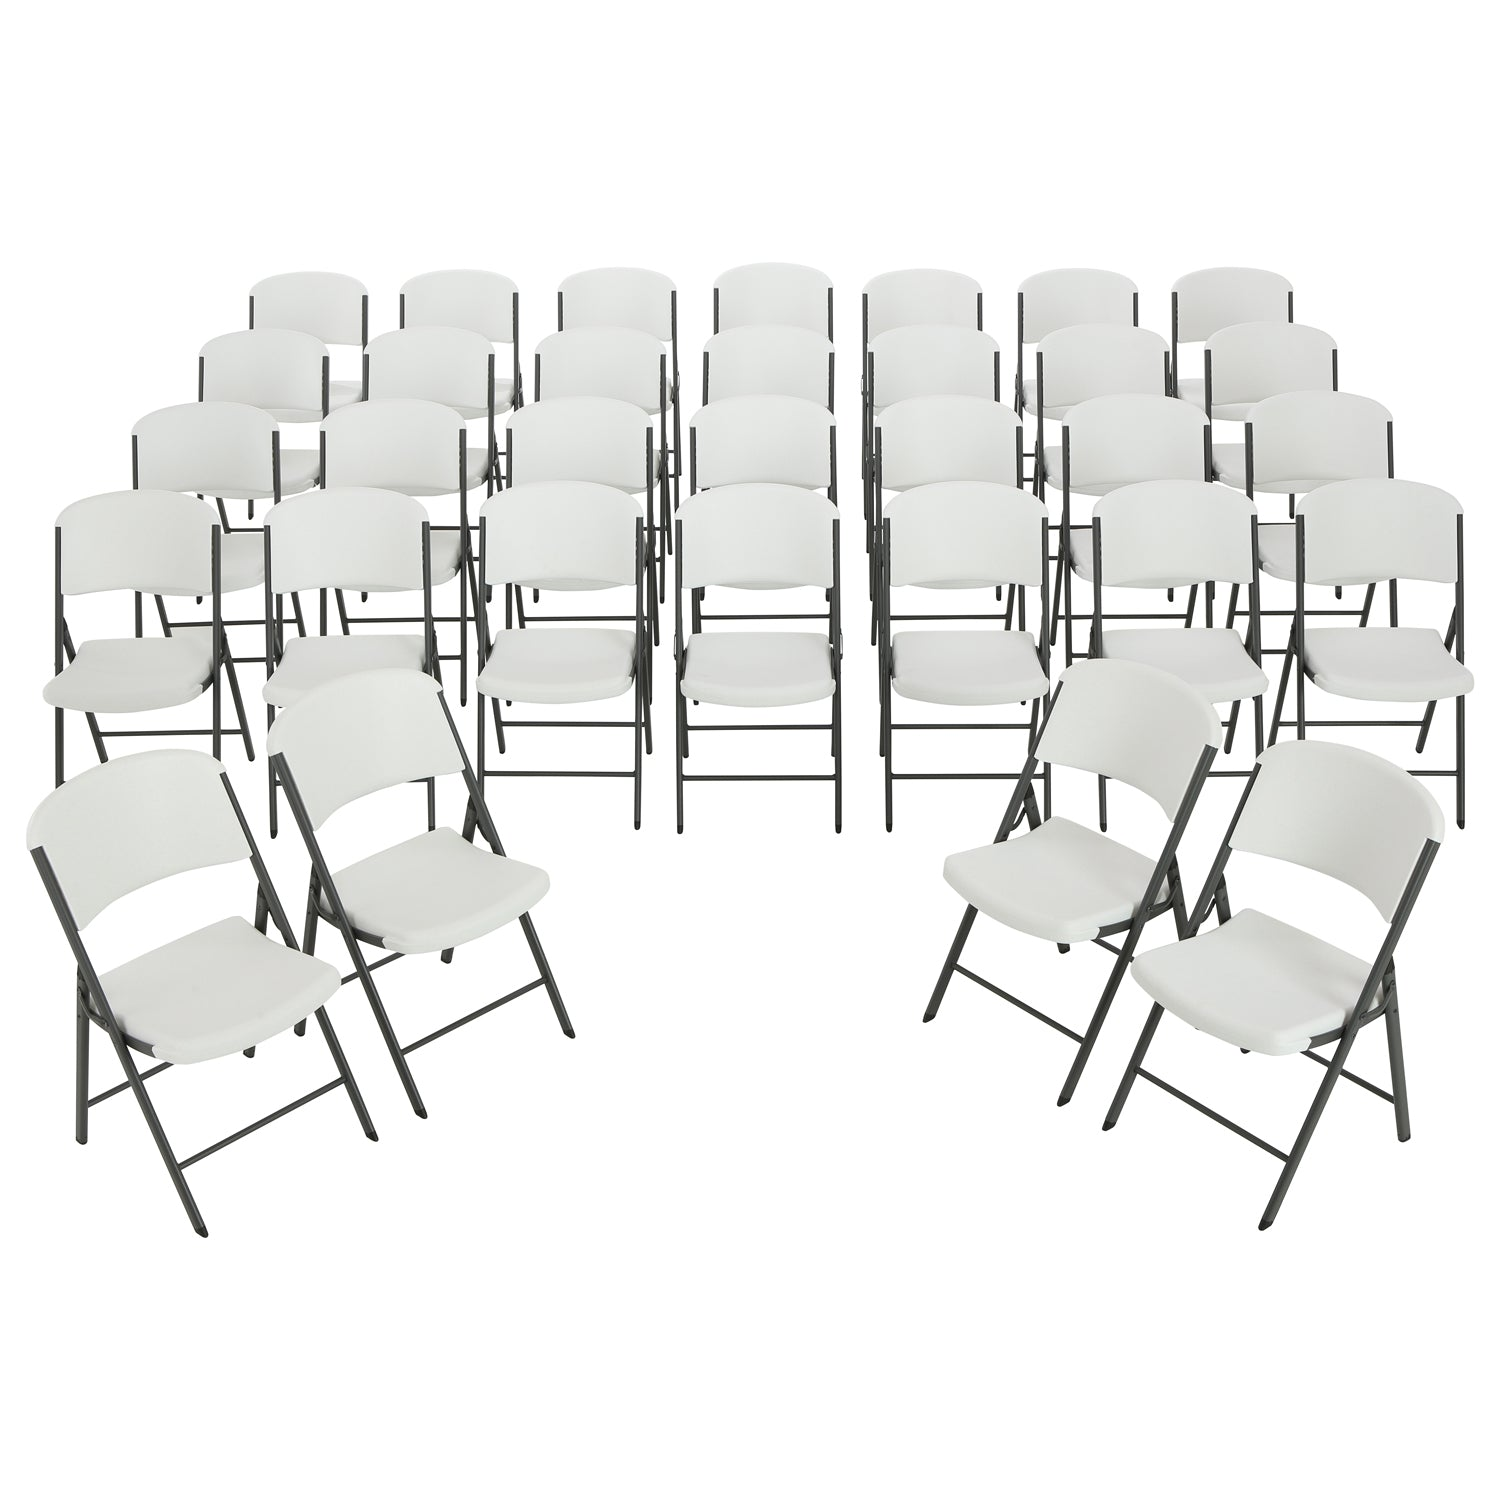 Groovy Lifetime Classic Commercial Grade Folding Chair 2802 White Pdpeps Interior Chair Design Pdpepsorg